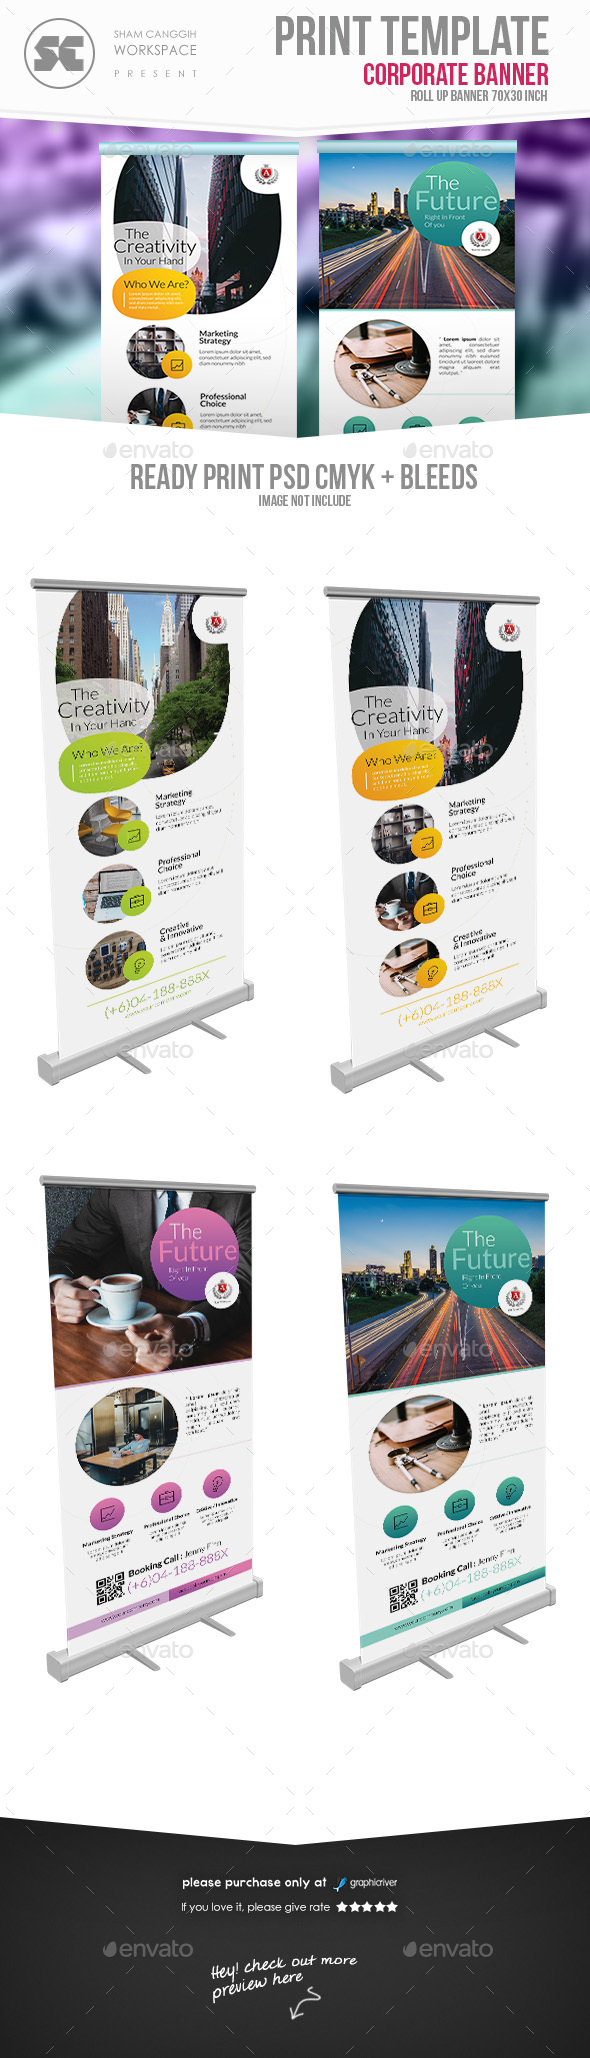 Corporate Roll Up Banner 2 in 1 - Signage Print Templates